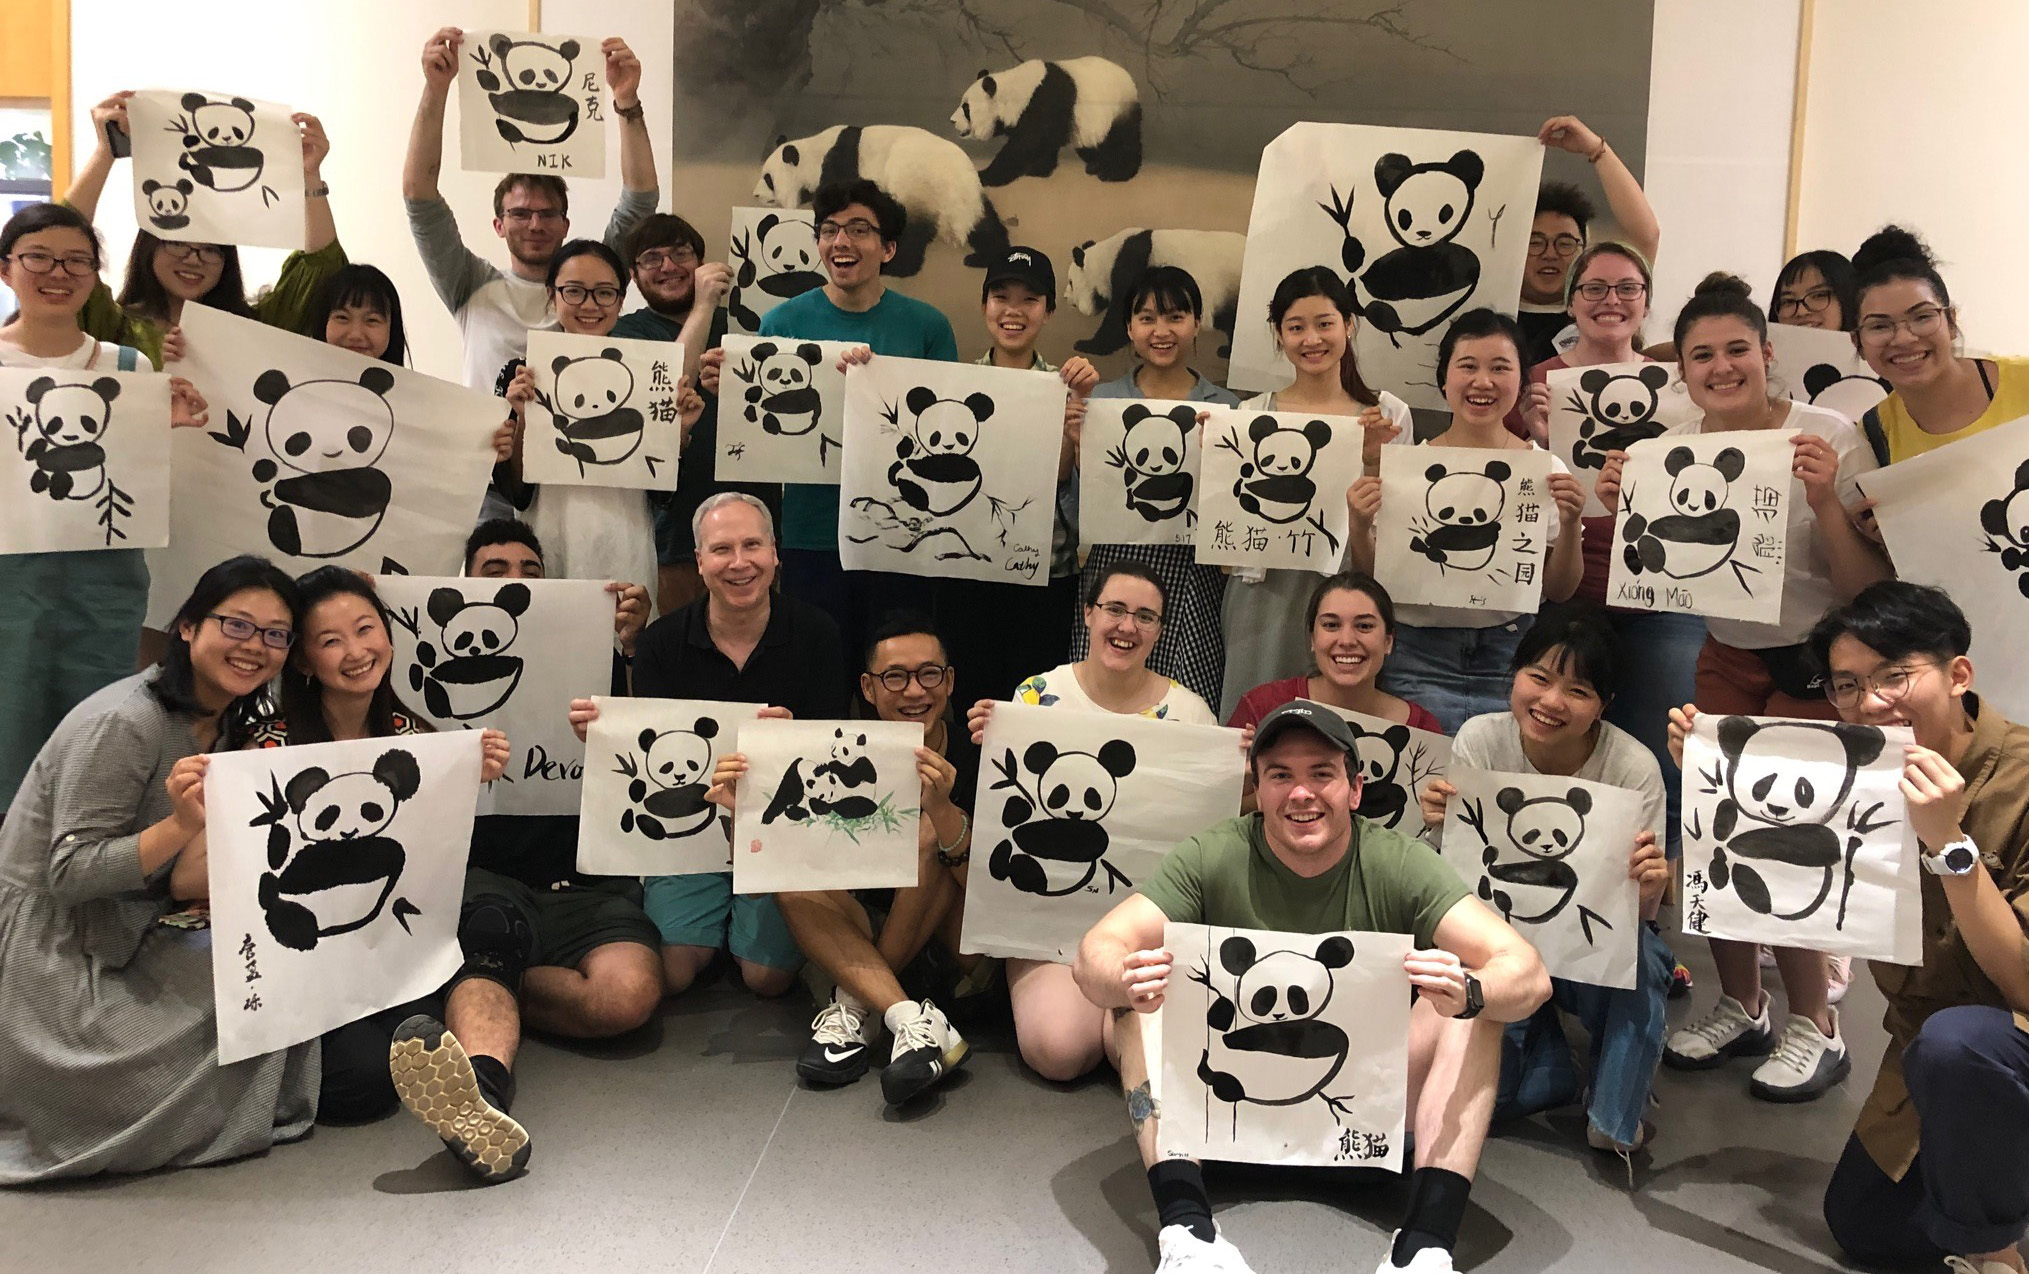 YSU students visiting Chengdu University and painting pandas using the traditional Chinese calligraphy method with students from Sichuan Normal University.